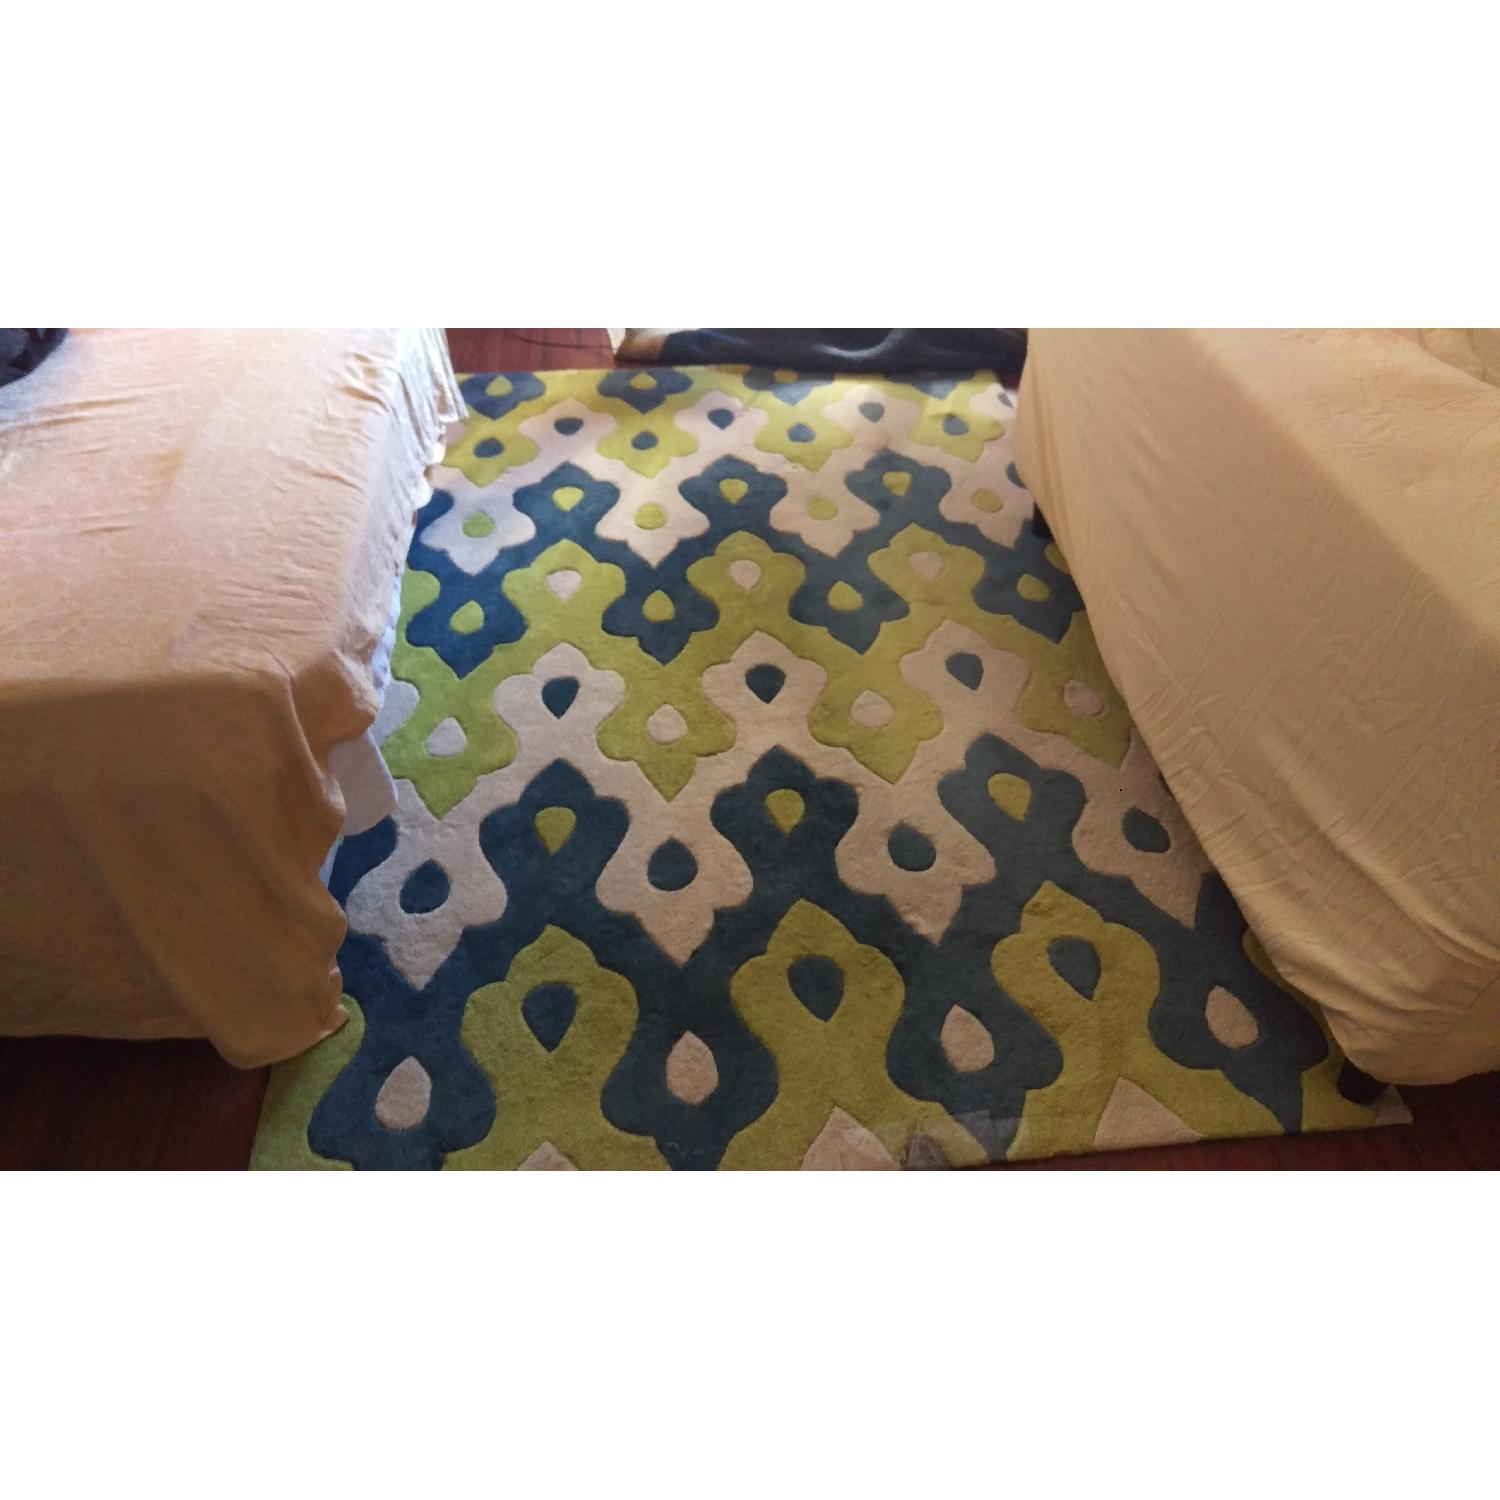 Rugs USA Area Rug in Blue Green & White - image-1